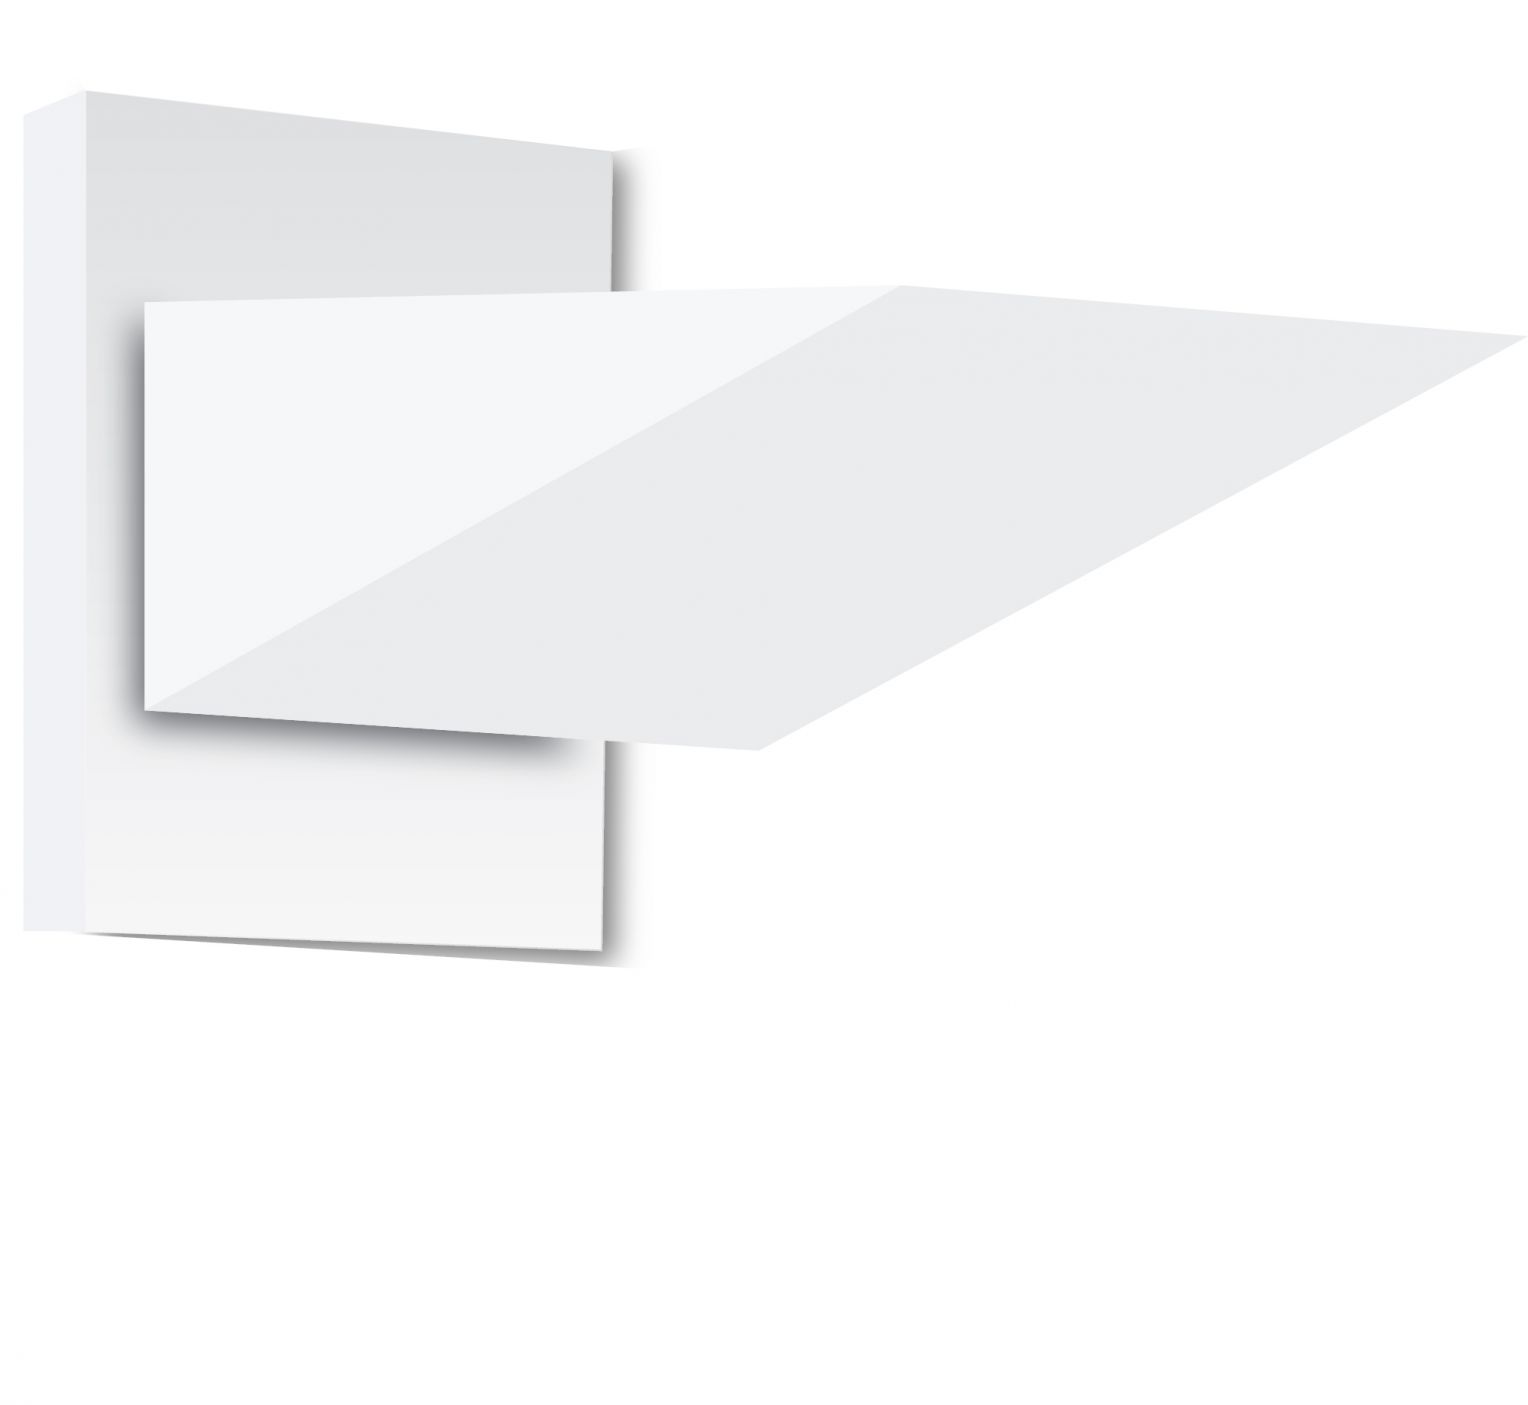 Belfer lighting 7215 the wedge light wall mount sconce belfer lighting 7215 the wedge light wall mount sconce alconlighting mozeypictures Choice Image